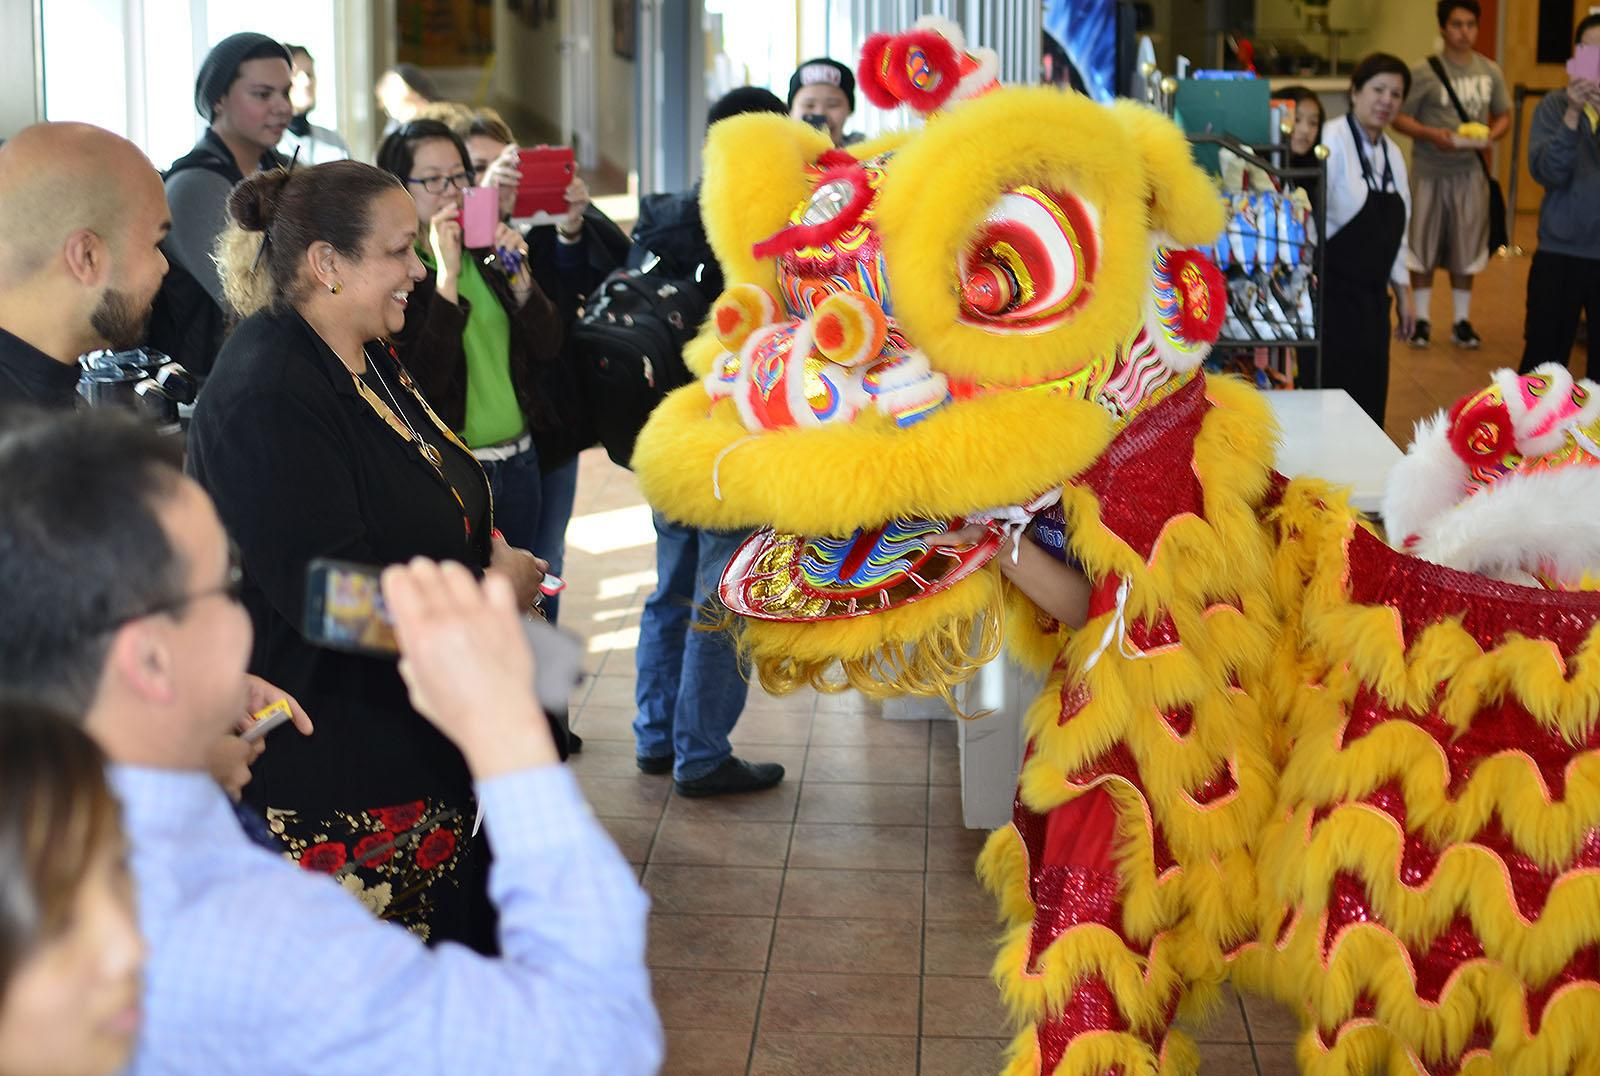 SJCC celebrates Lunar New Year